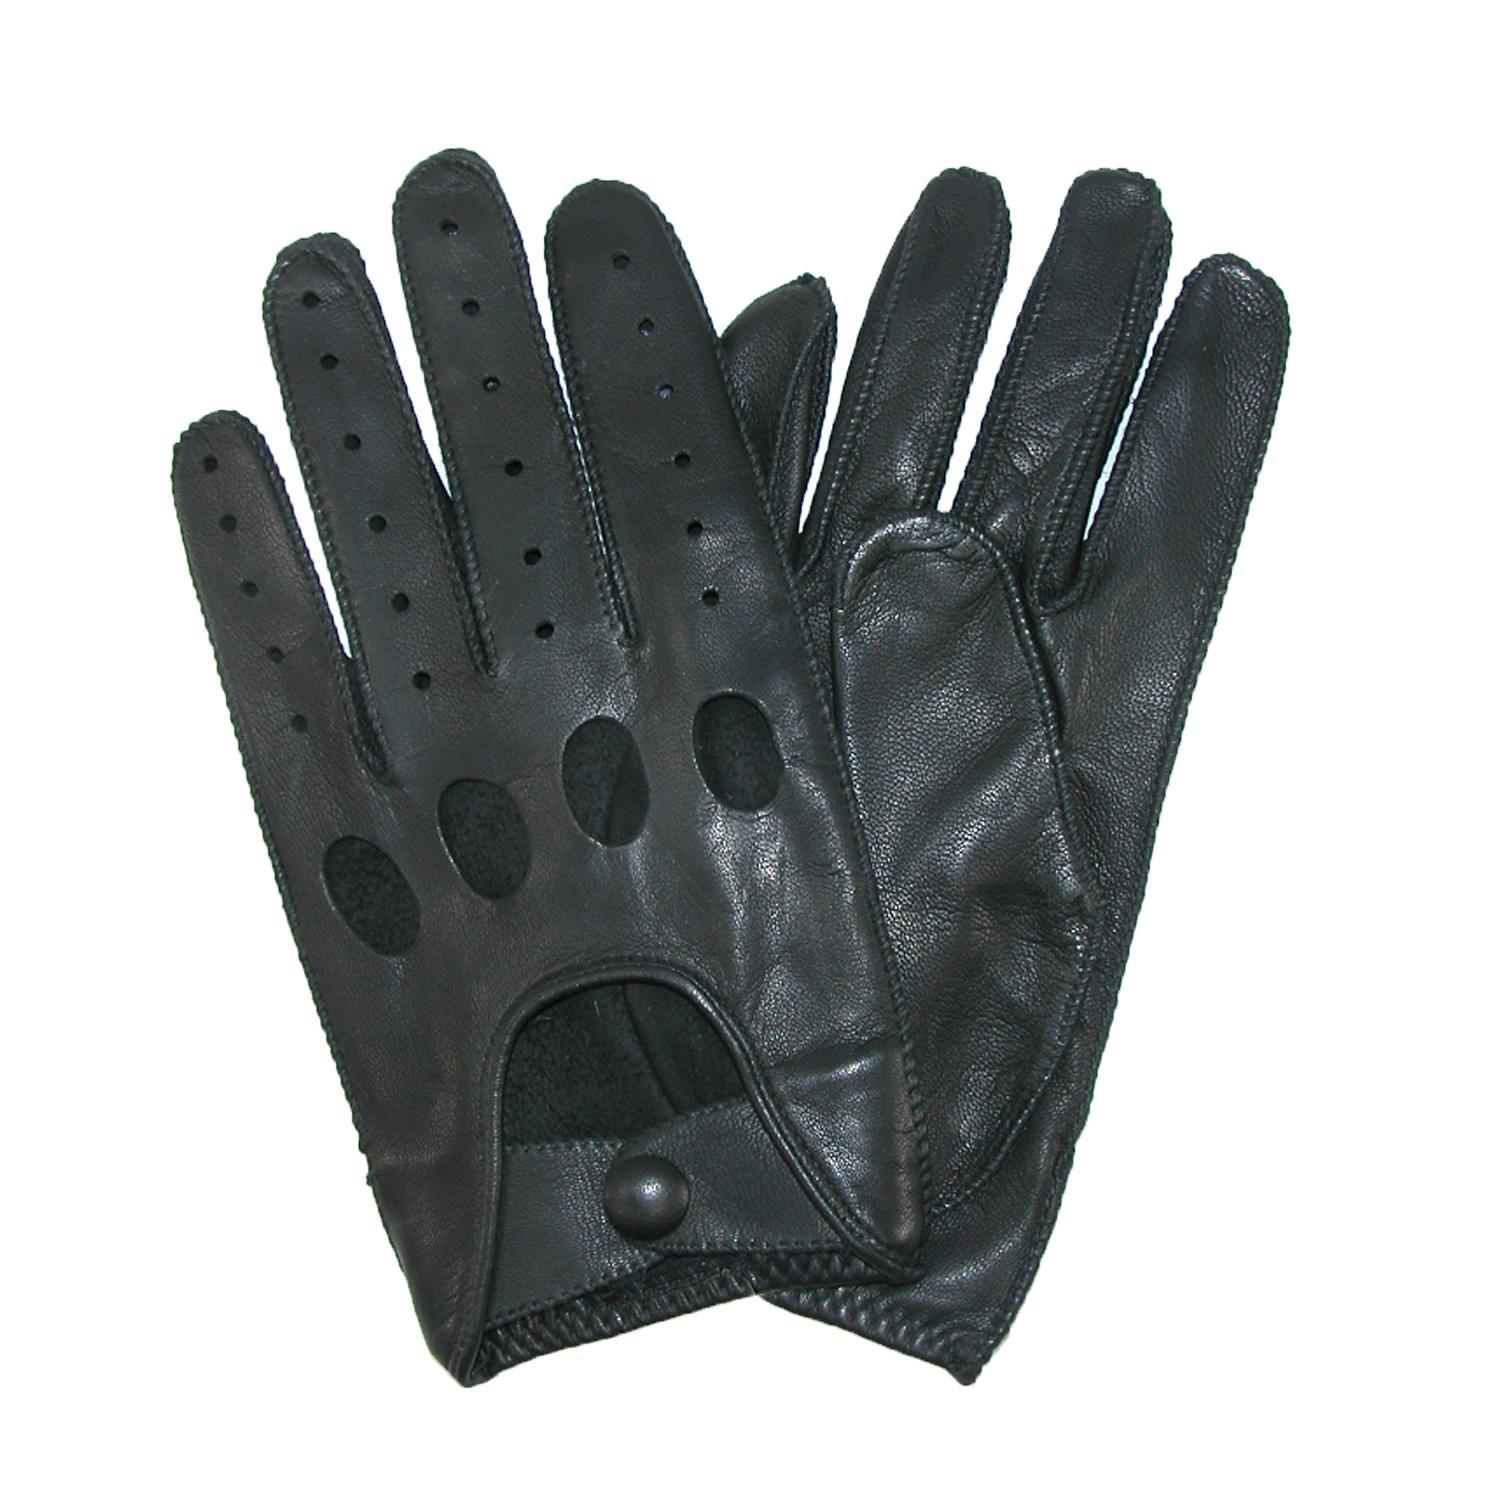 Leather driving gloves on ebay - Picture 3 Of 7